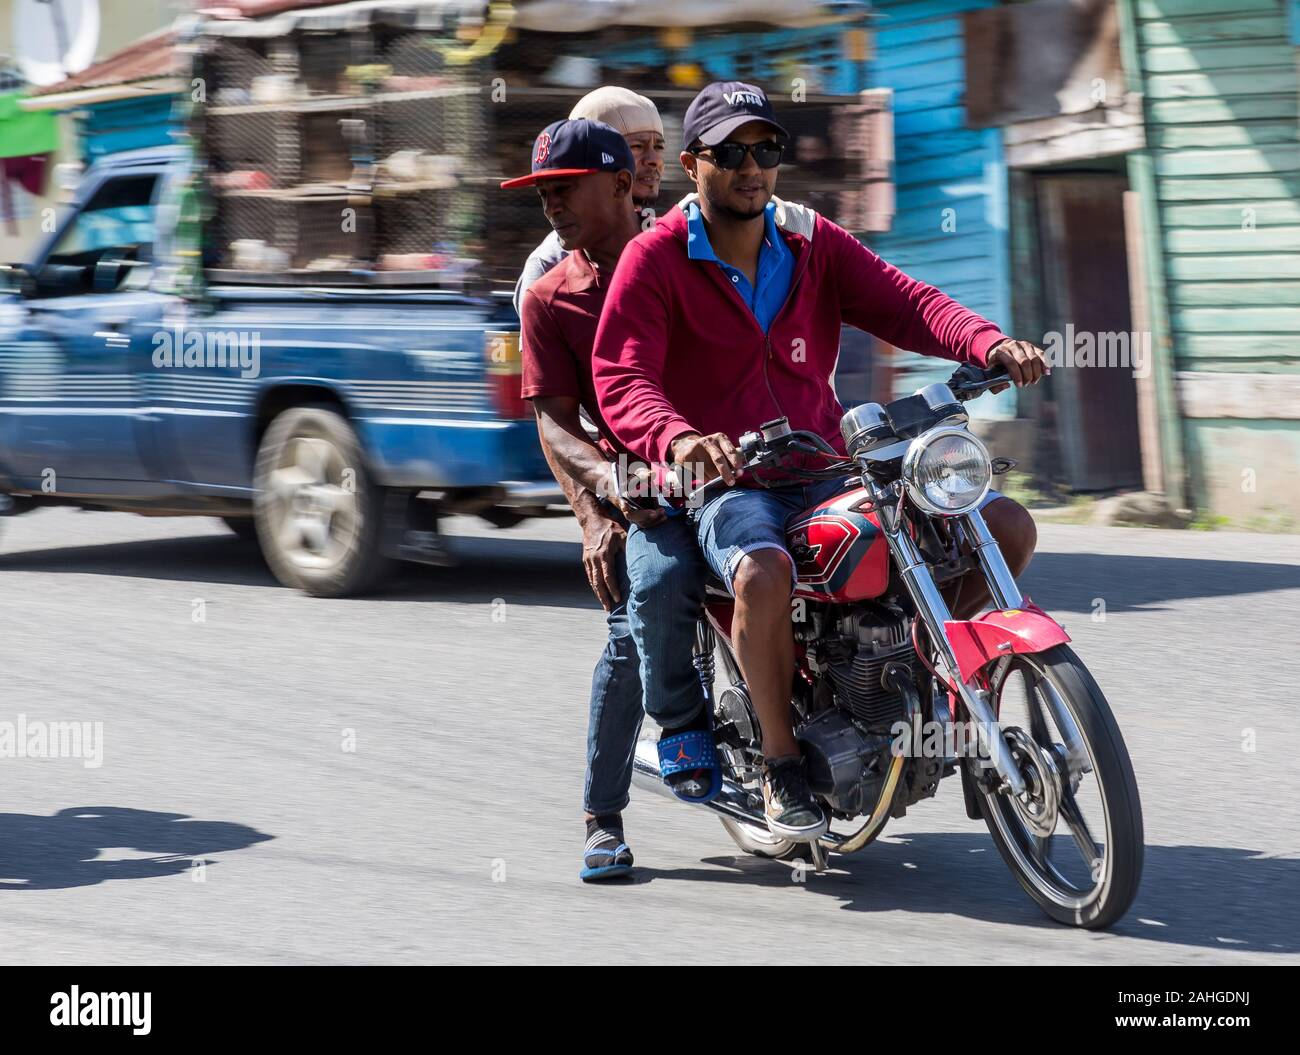 Dominican Men High Resolution Stock Photography And Images Alamy